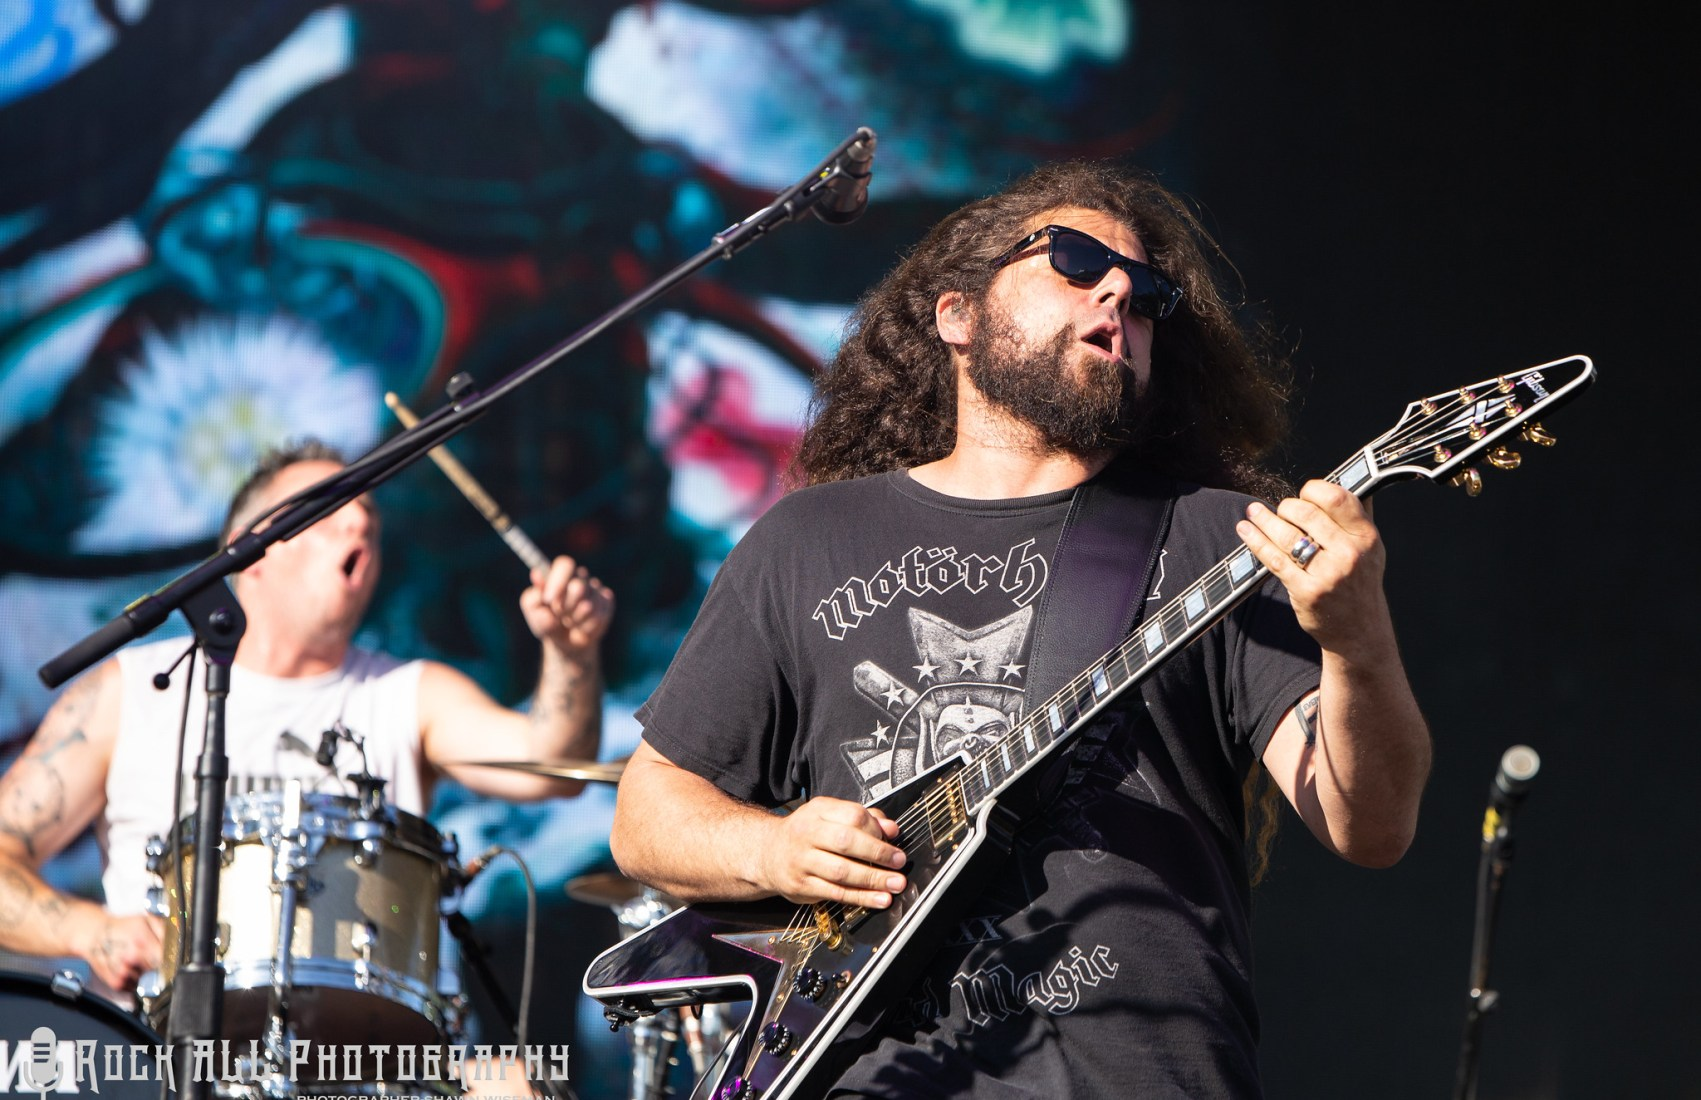 COHEED AND CAMBRIA - Bunbury Music Festival 2018 - 6/2/18 - Cincinnati Ohio